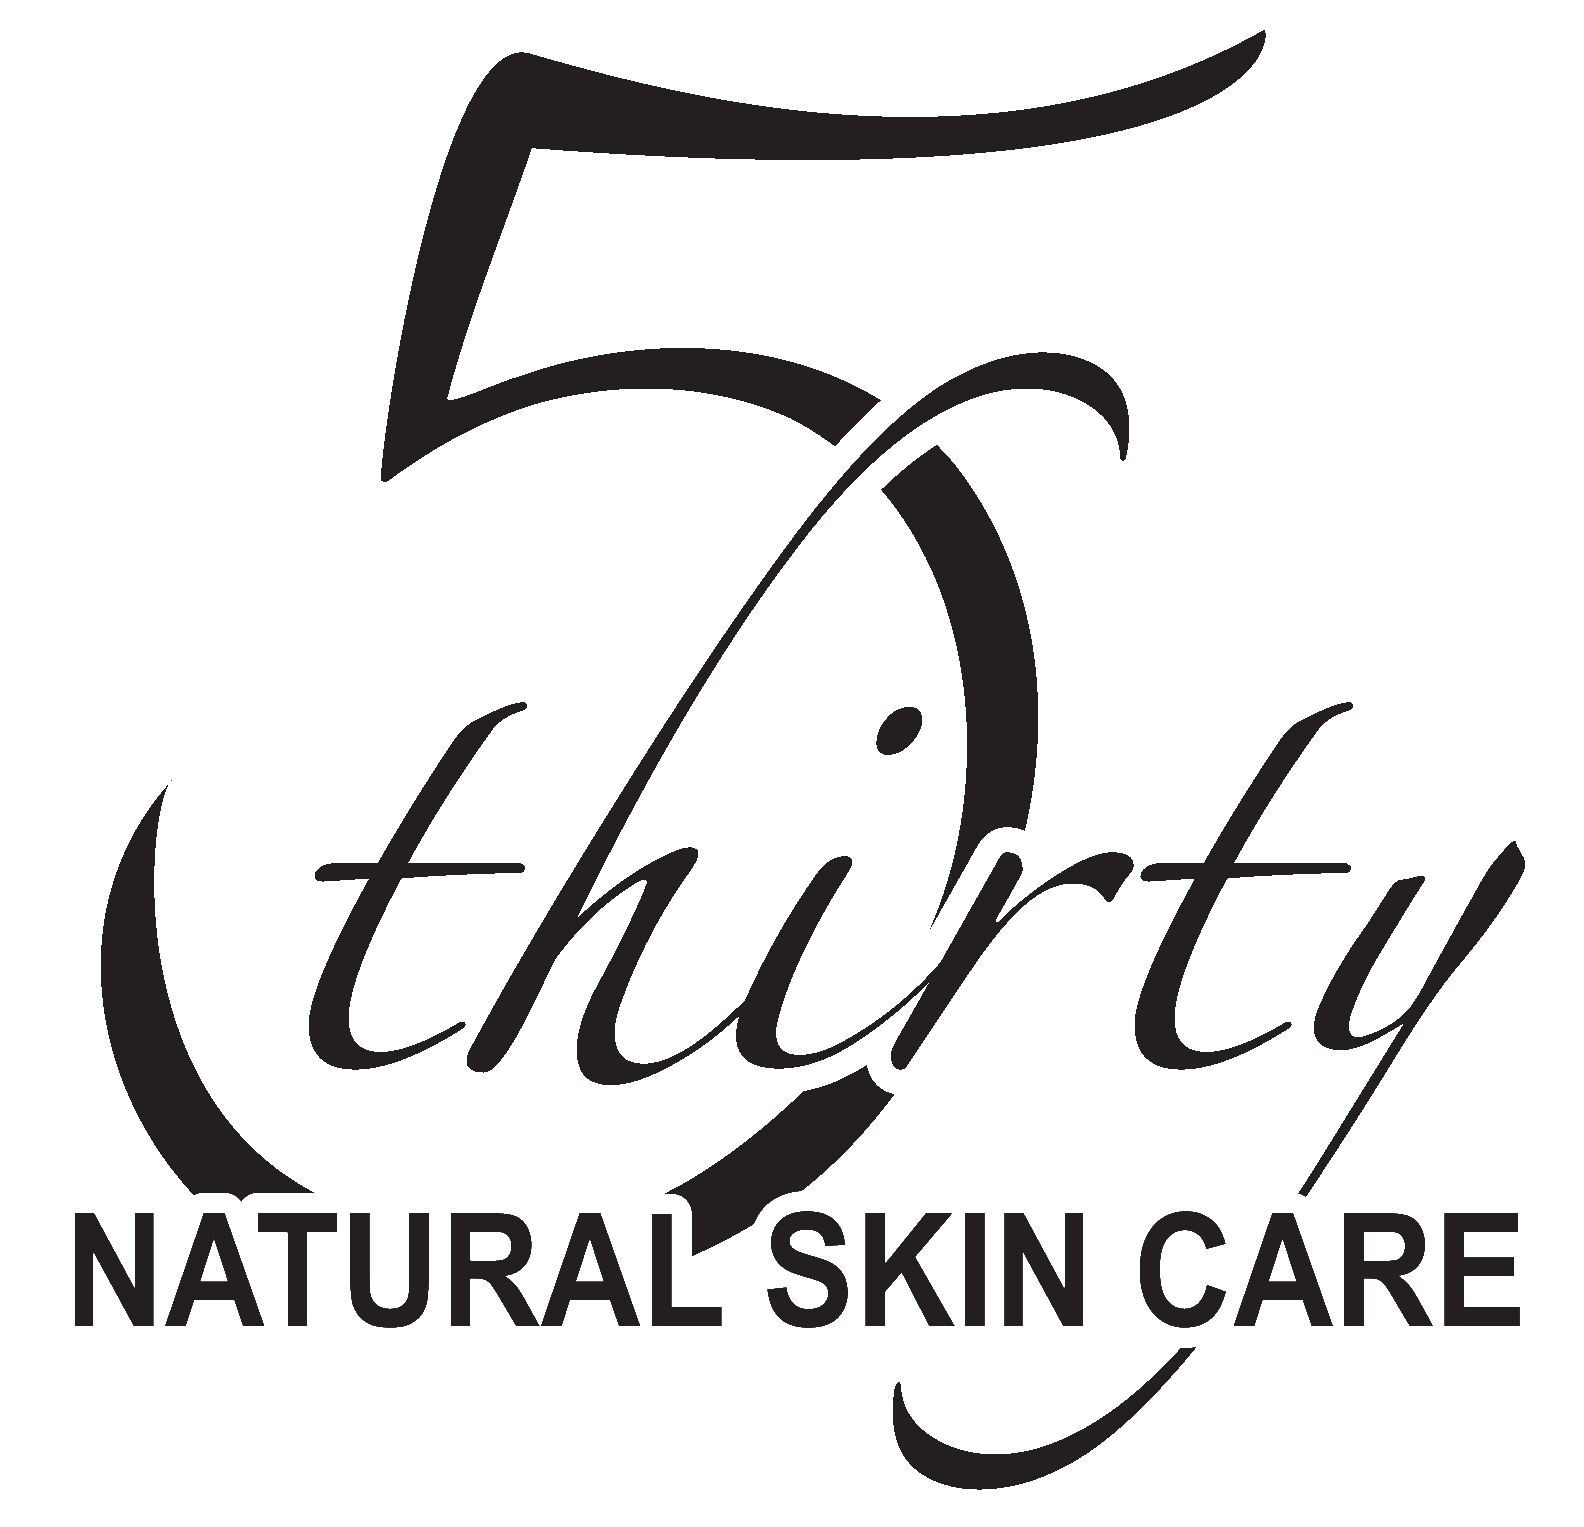 5thirty Natural Skin Care